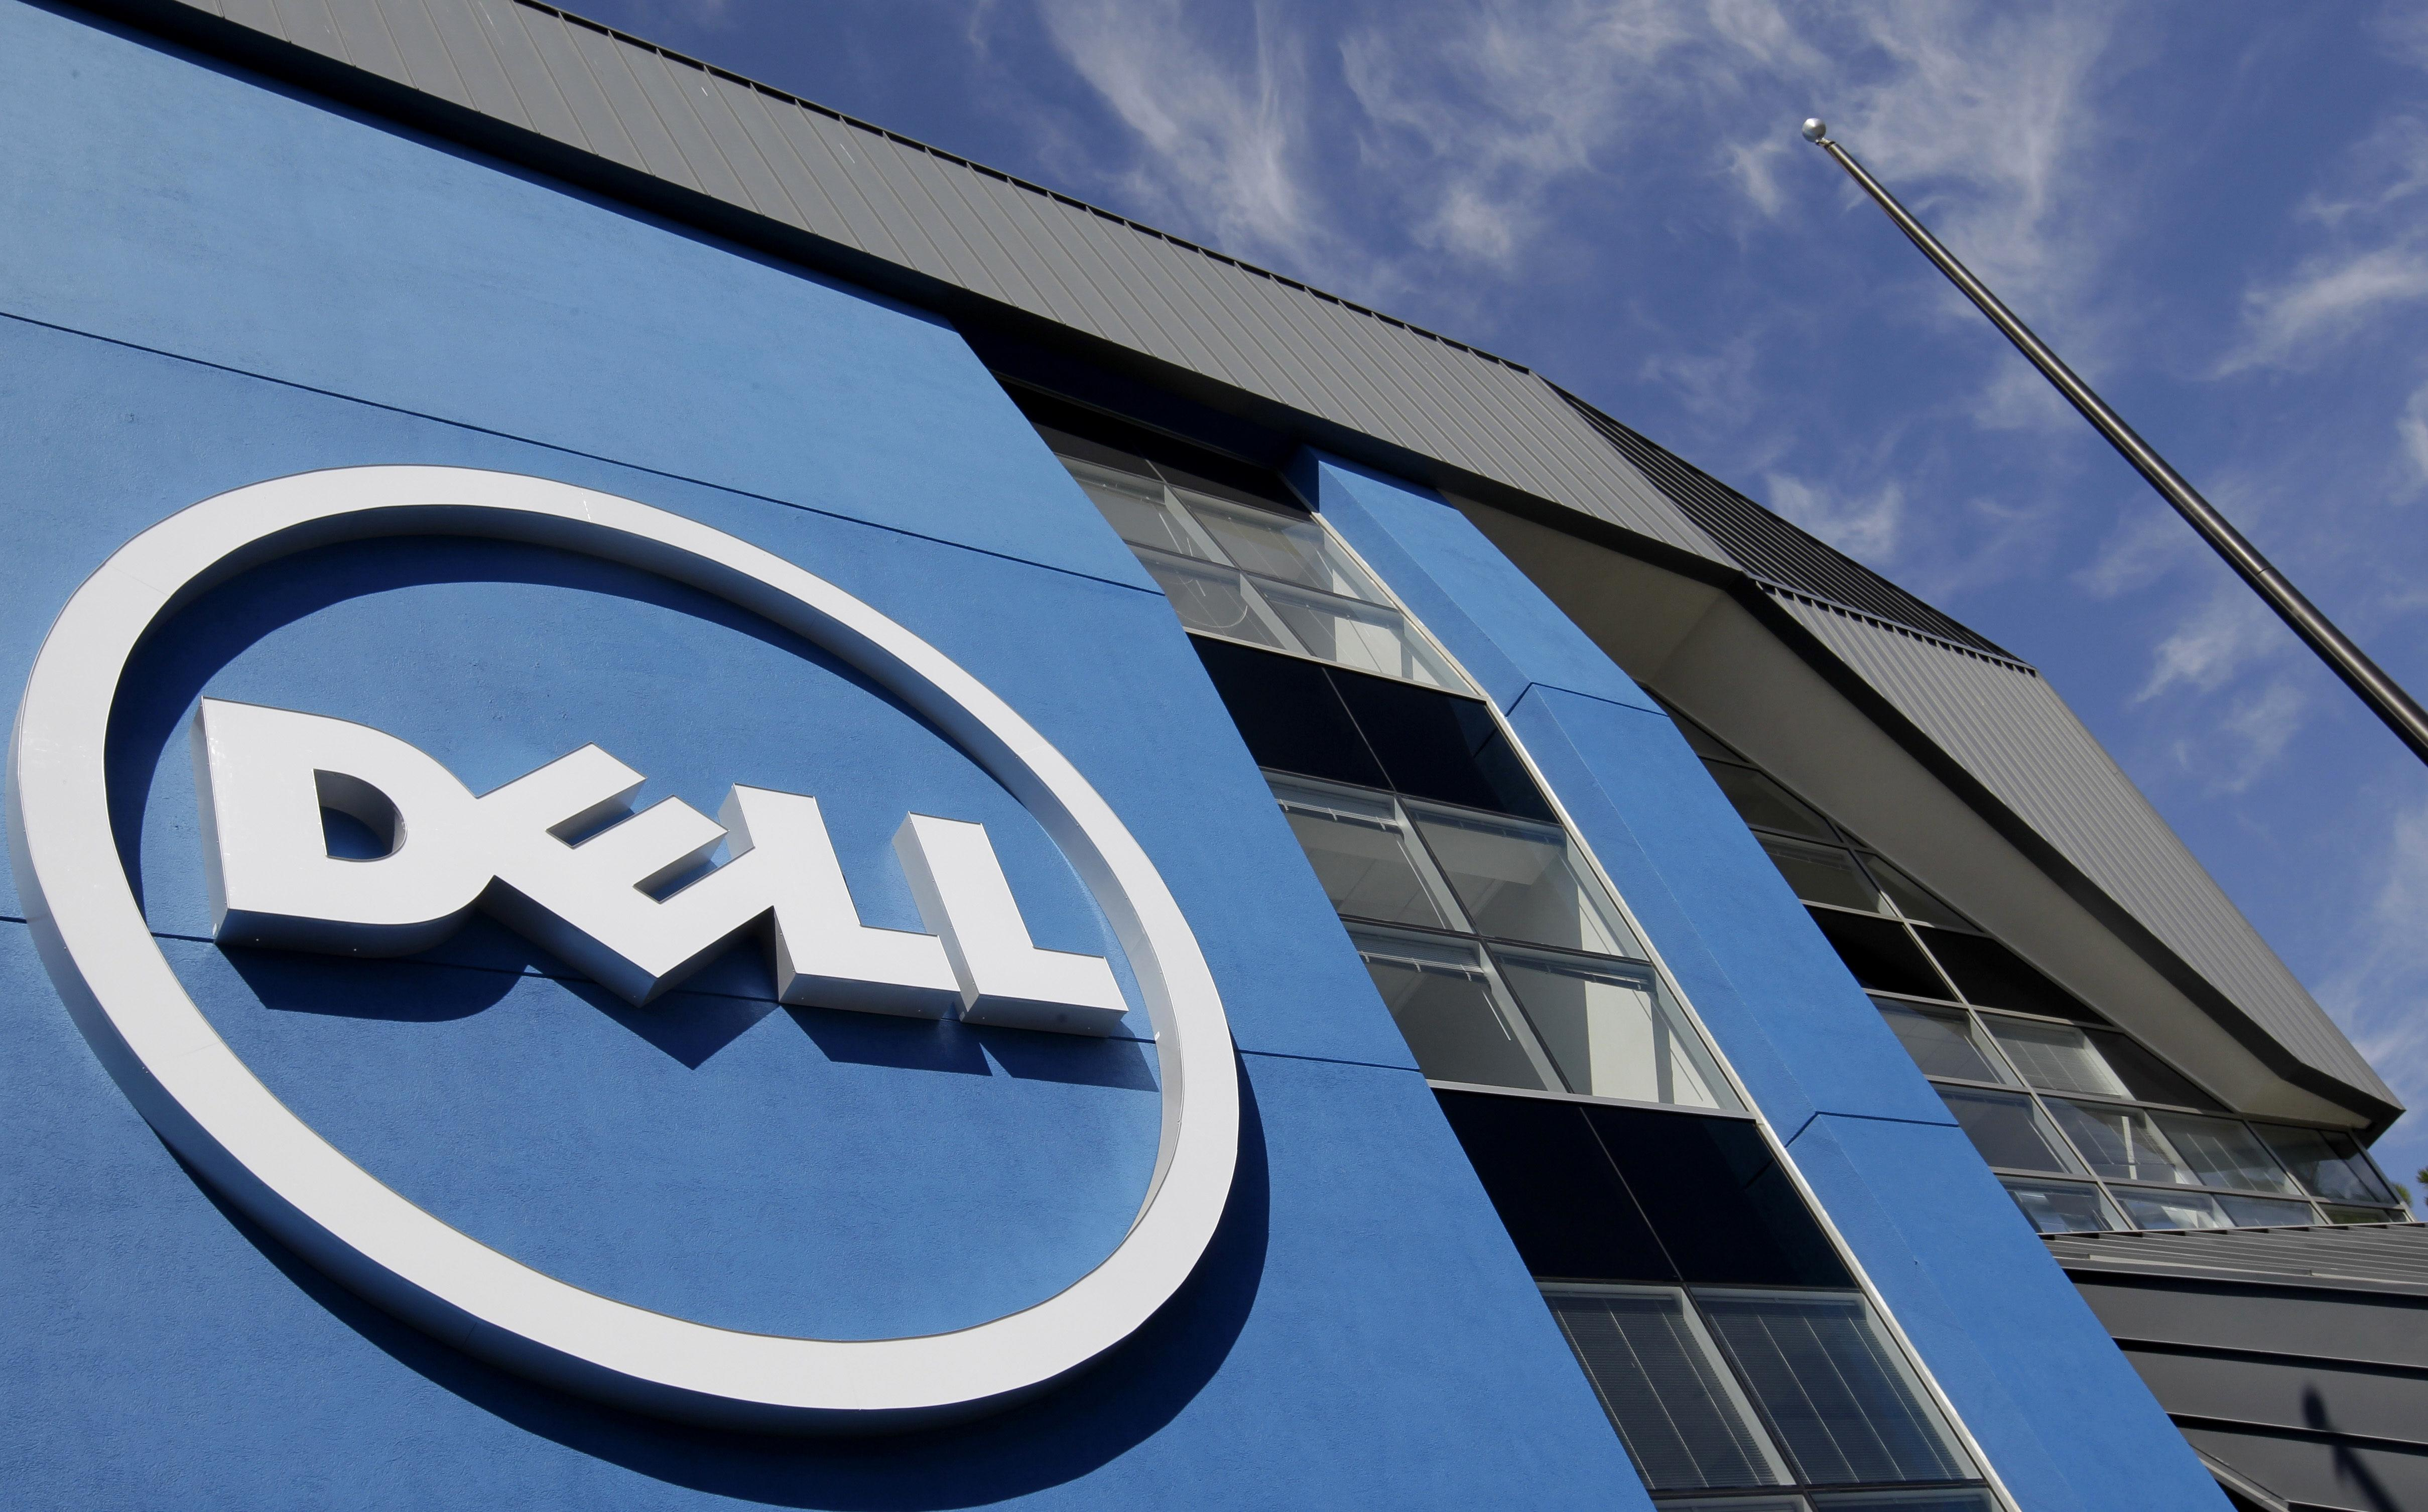 Dells Tracking Stock Offer For Emc Disappoints